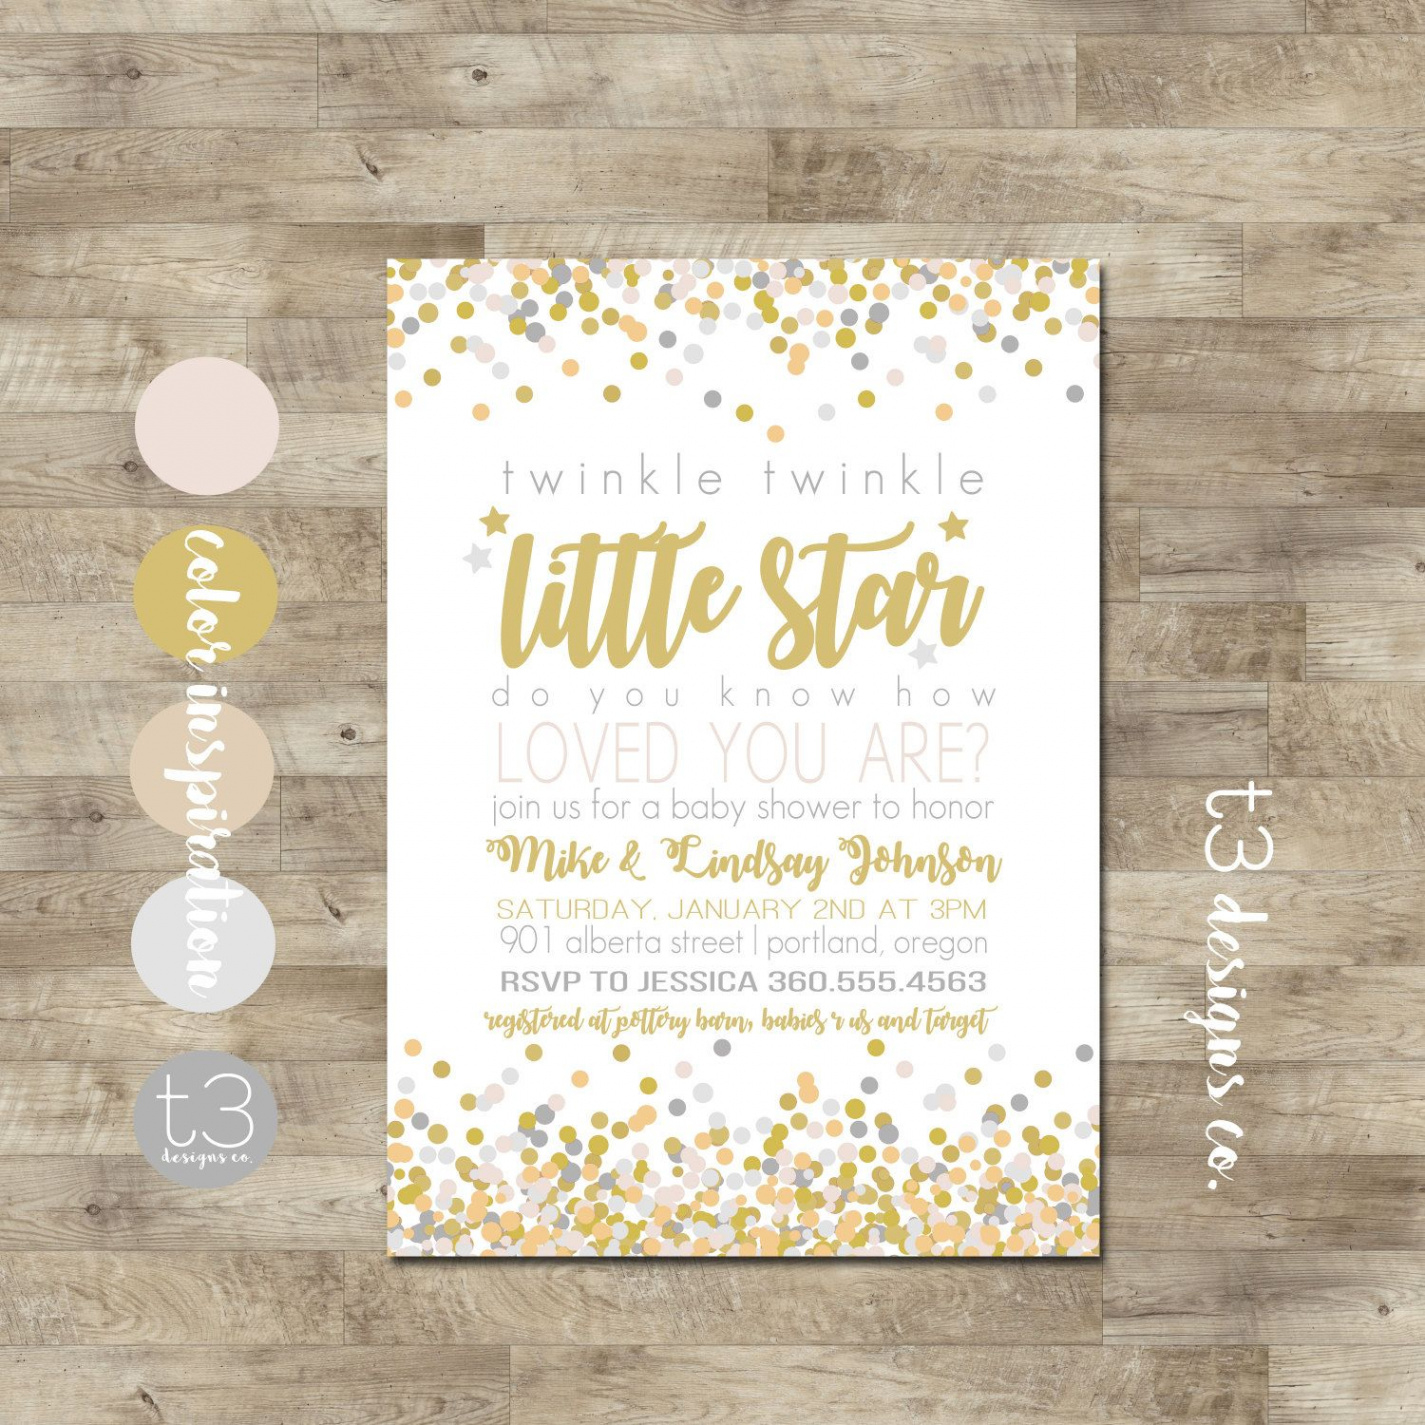 Free Printable Twinkle Twinkle Little Star Baby Shower Invitations - Free Printable Twinkle Twinkle Little Star Baby Shower Invitations